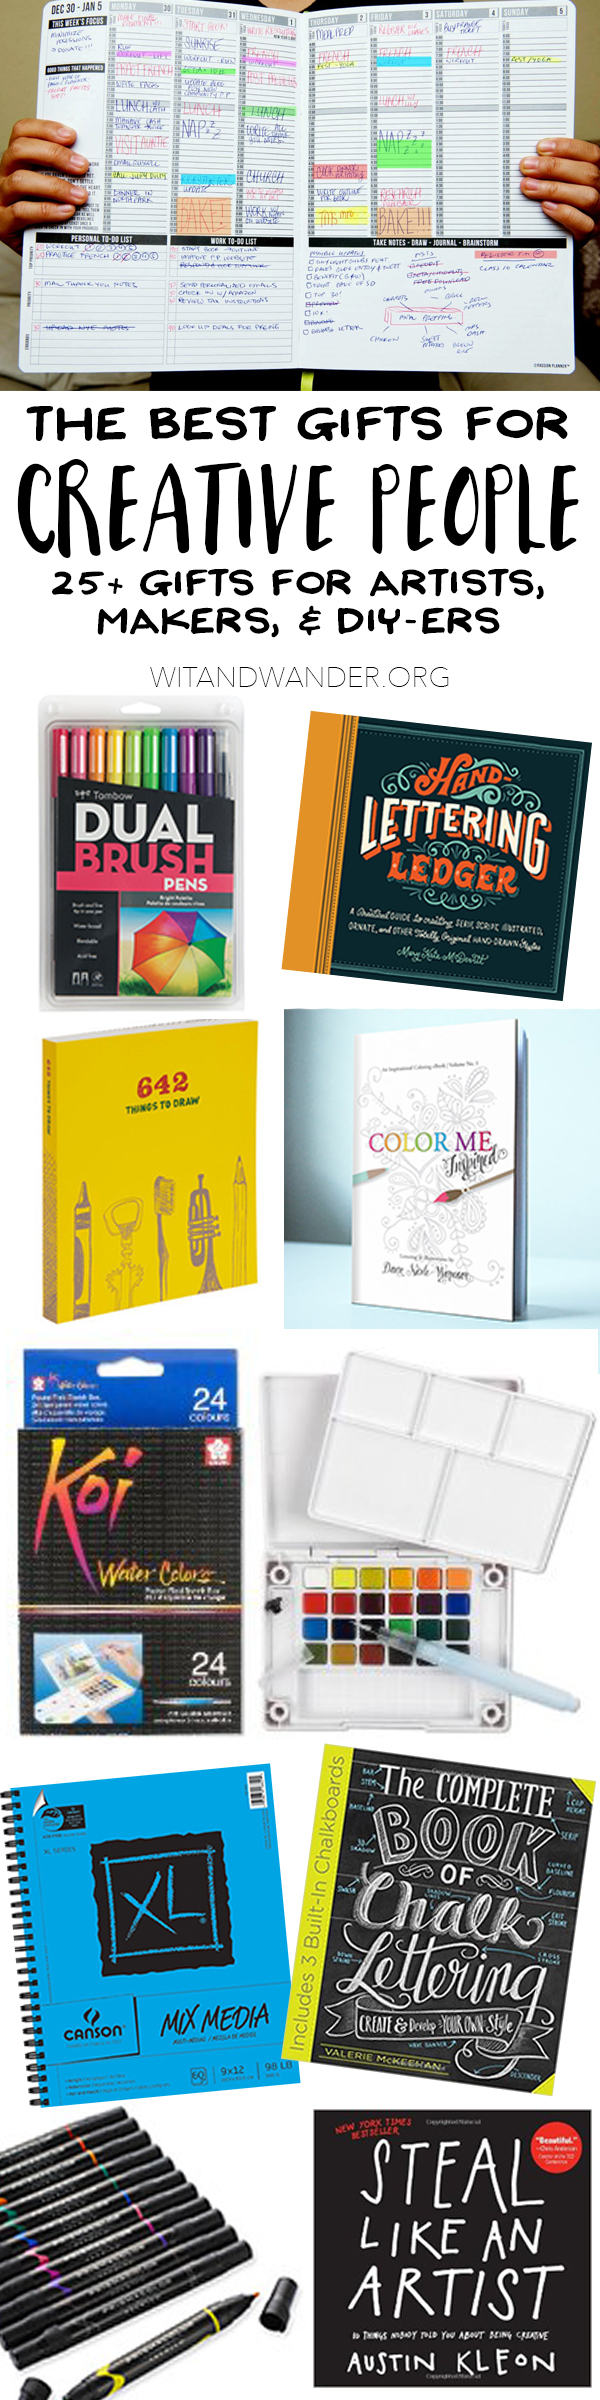 The Absolute Best Gifts For Creative People Artists Makers And Diyers Our Handcrafted Life